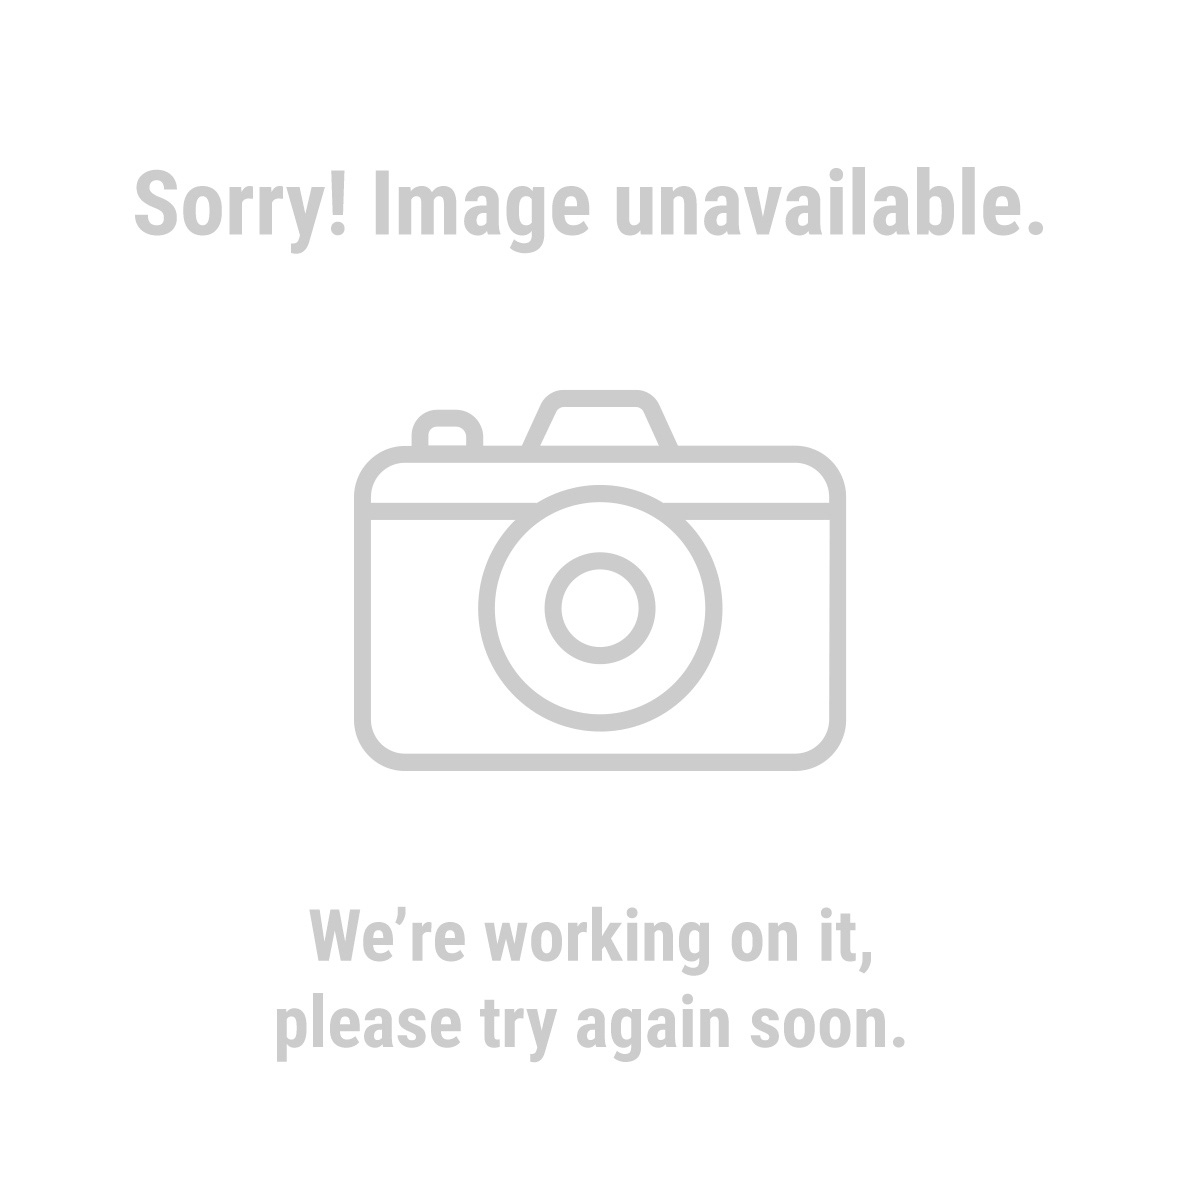 Badland® 63139 ATV/Utility Synthetic Rope & Fairlead Set